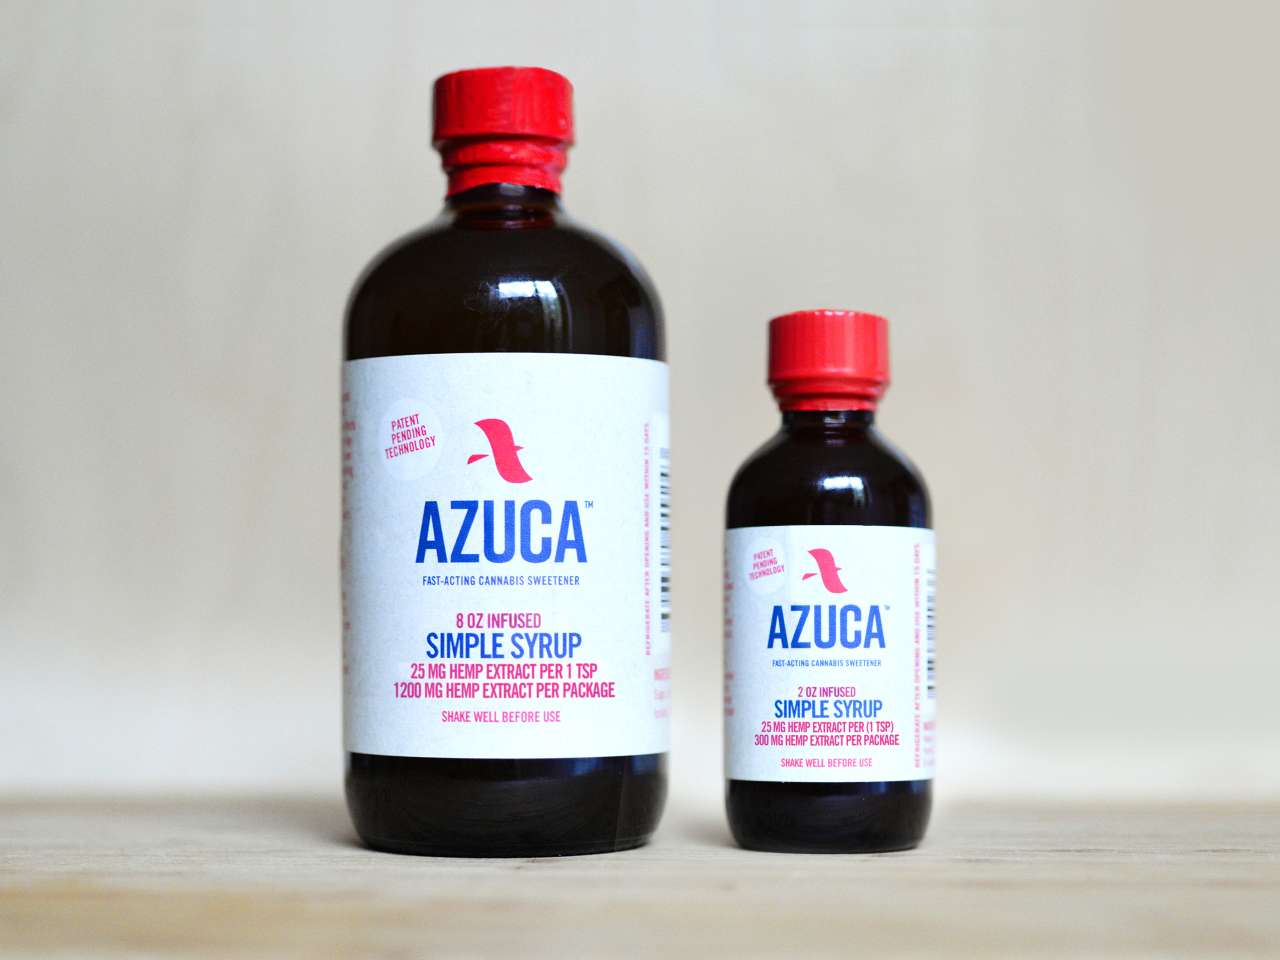 Azuca Labs: The Origin of Rapid, Reliable Edibles